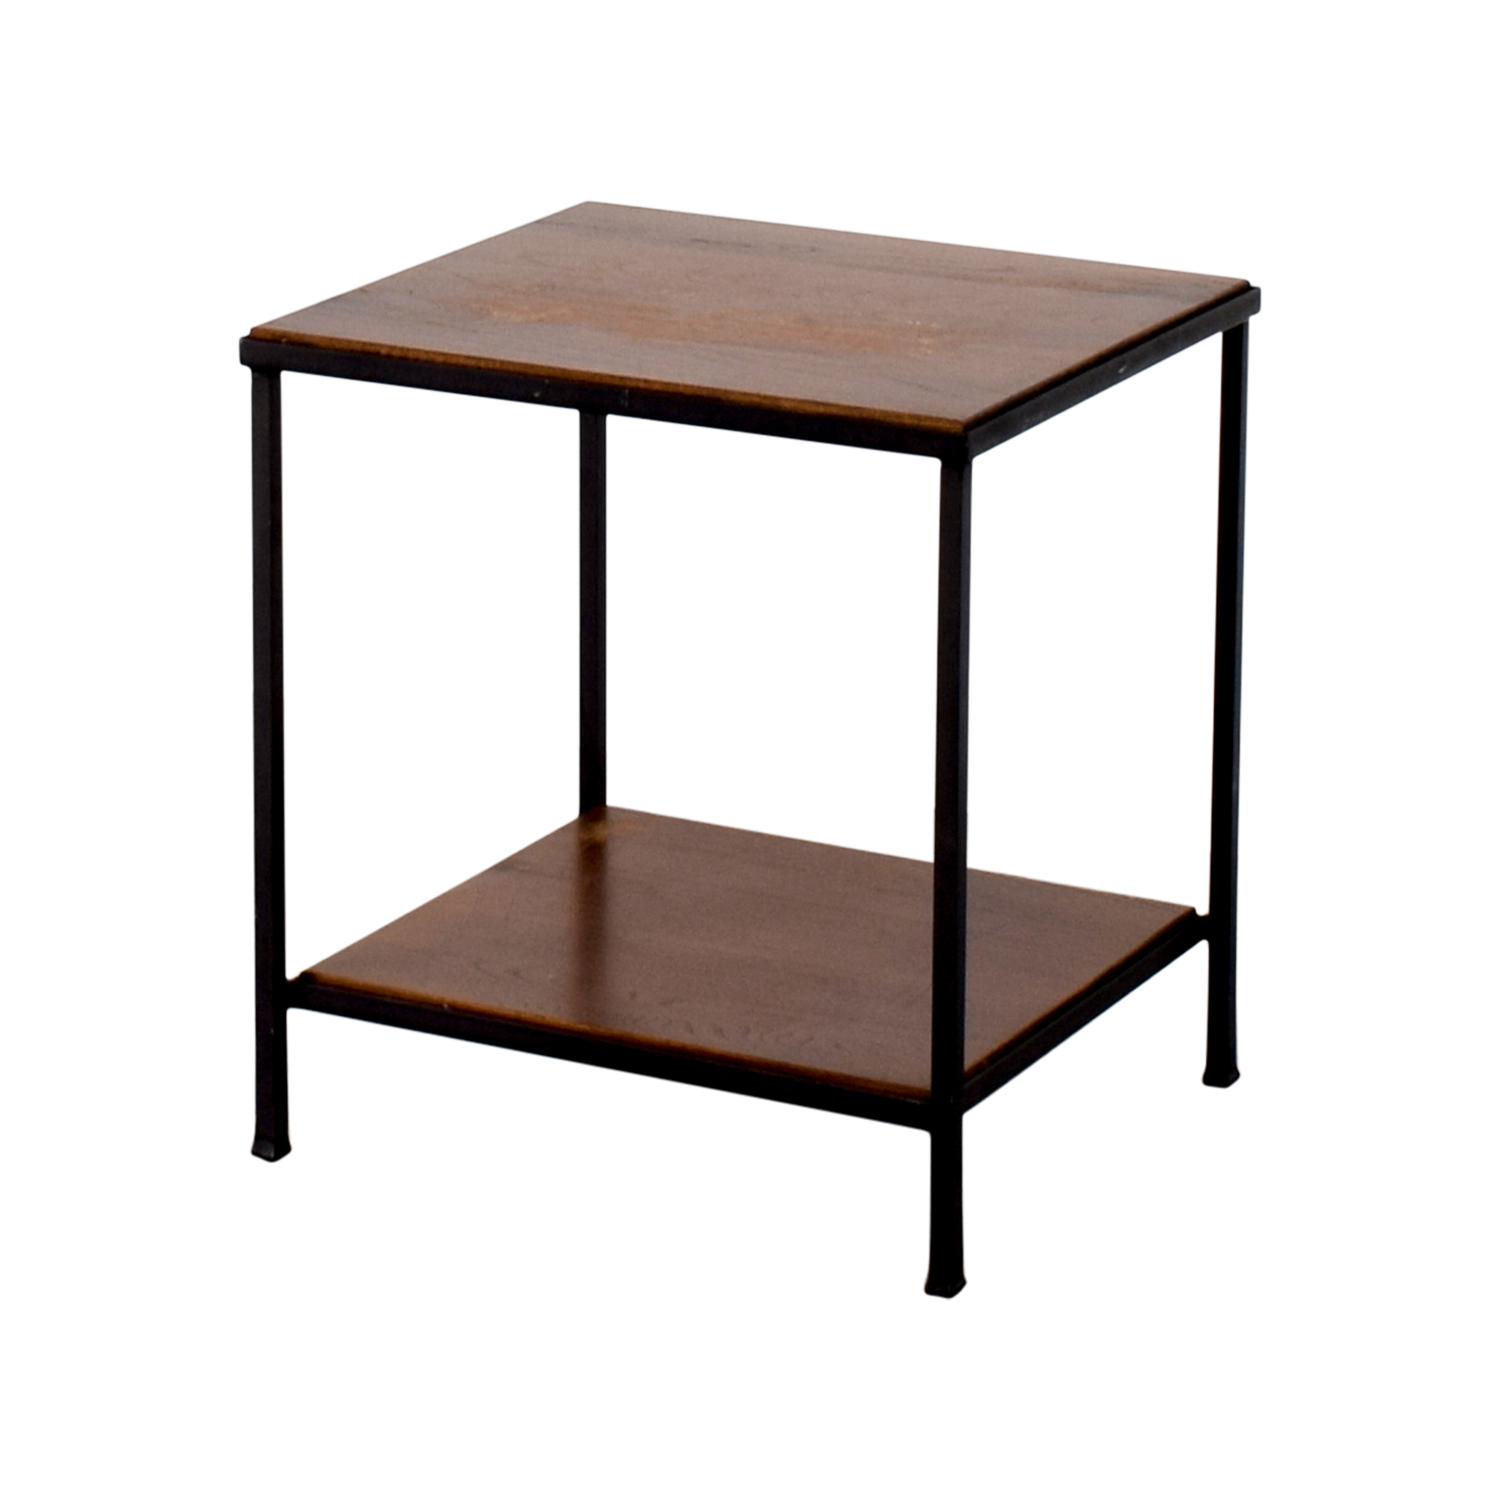 Wood And Metal Side Tables 71 Off Pottery Barn Pottery Barn Wood And Metal Side